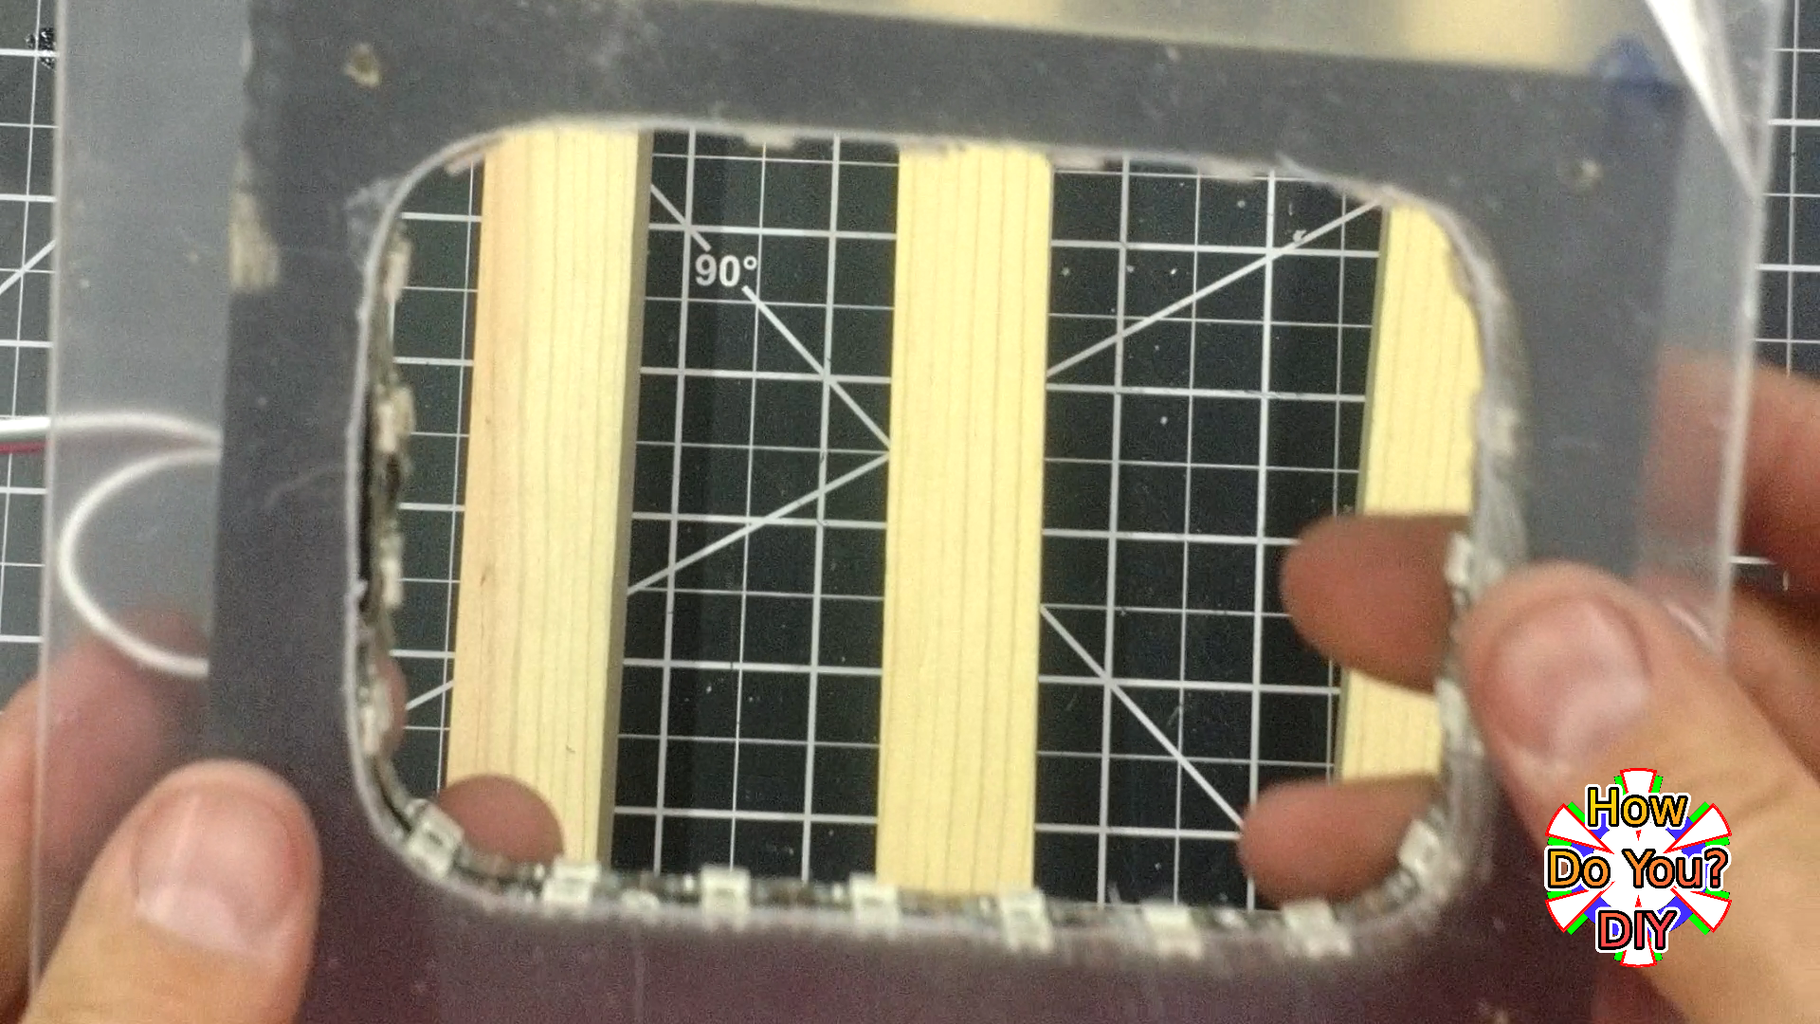 The Second Plastic Layer